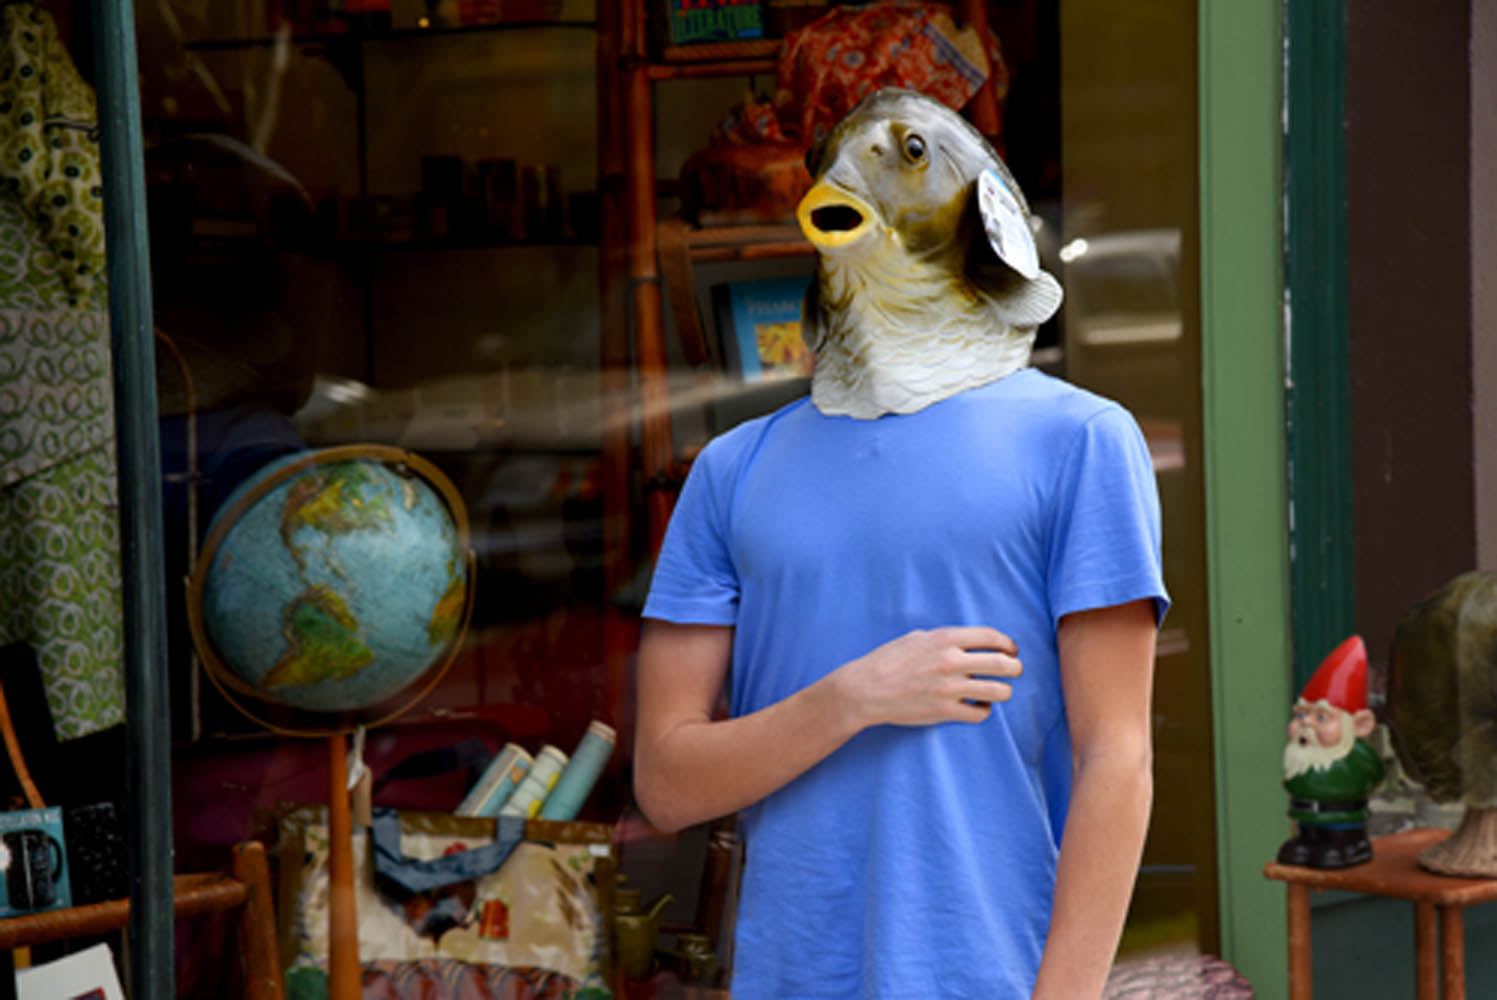 A boy dons a fish mask, 2018 © Robert George Photographs